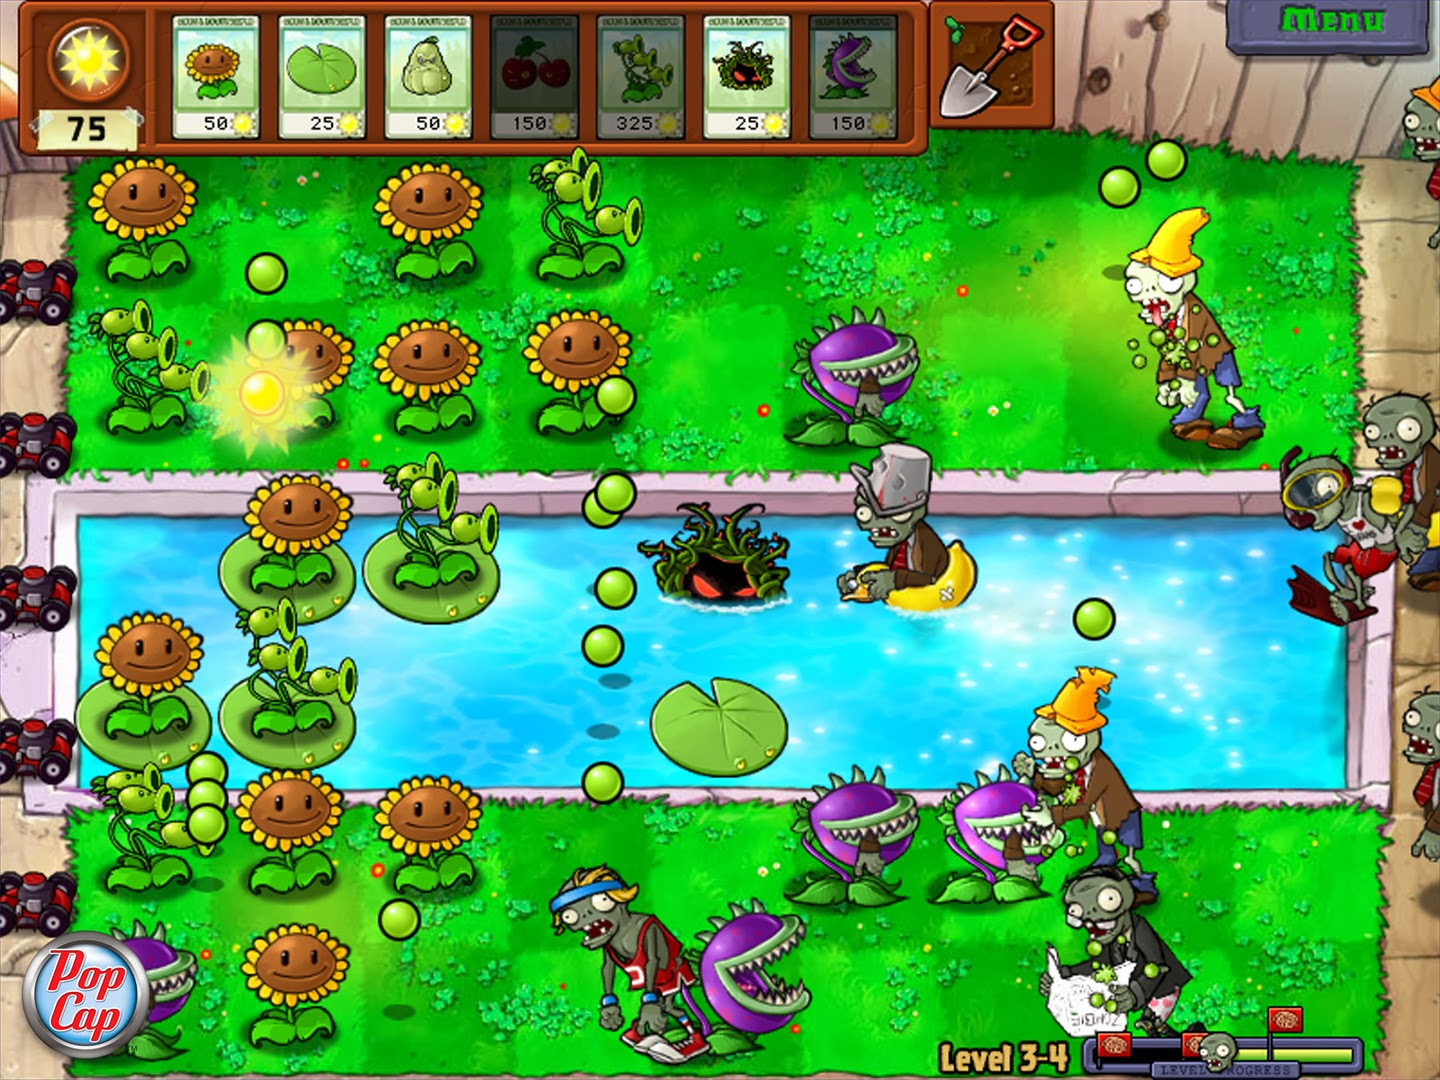 plants vs zombies free download full version pc